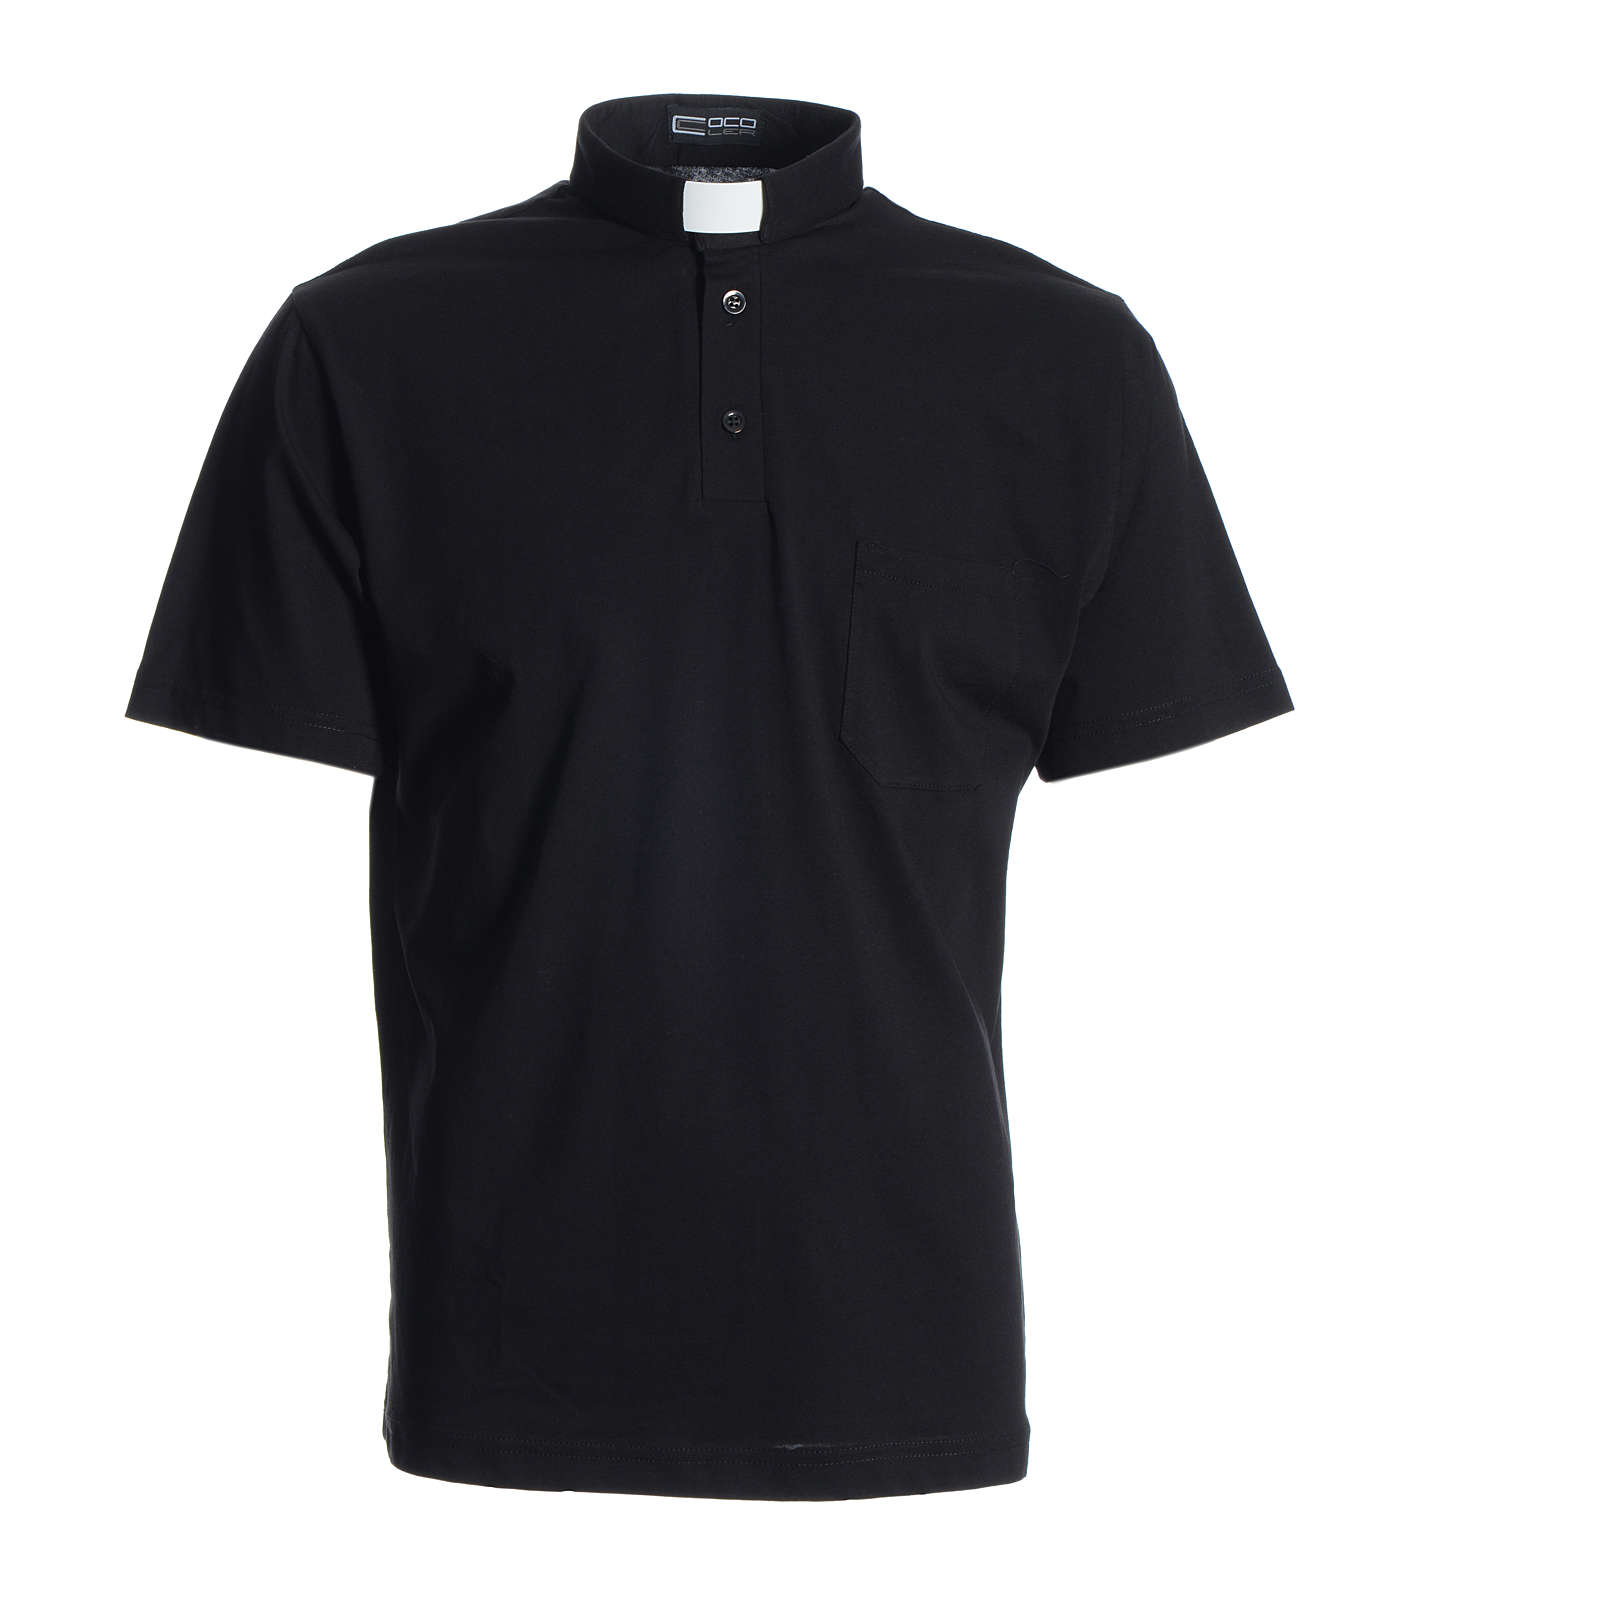 Polo clergy noir 100% coton 4